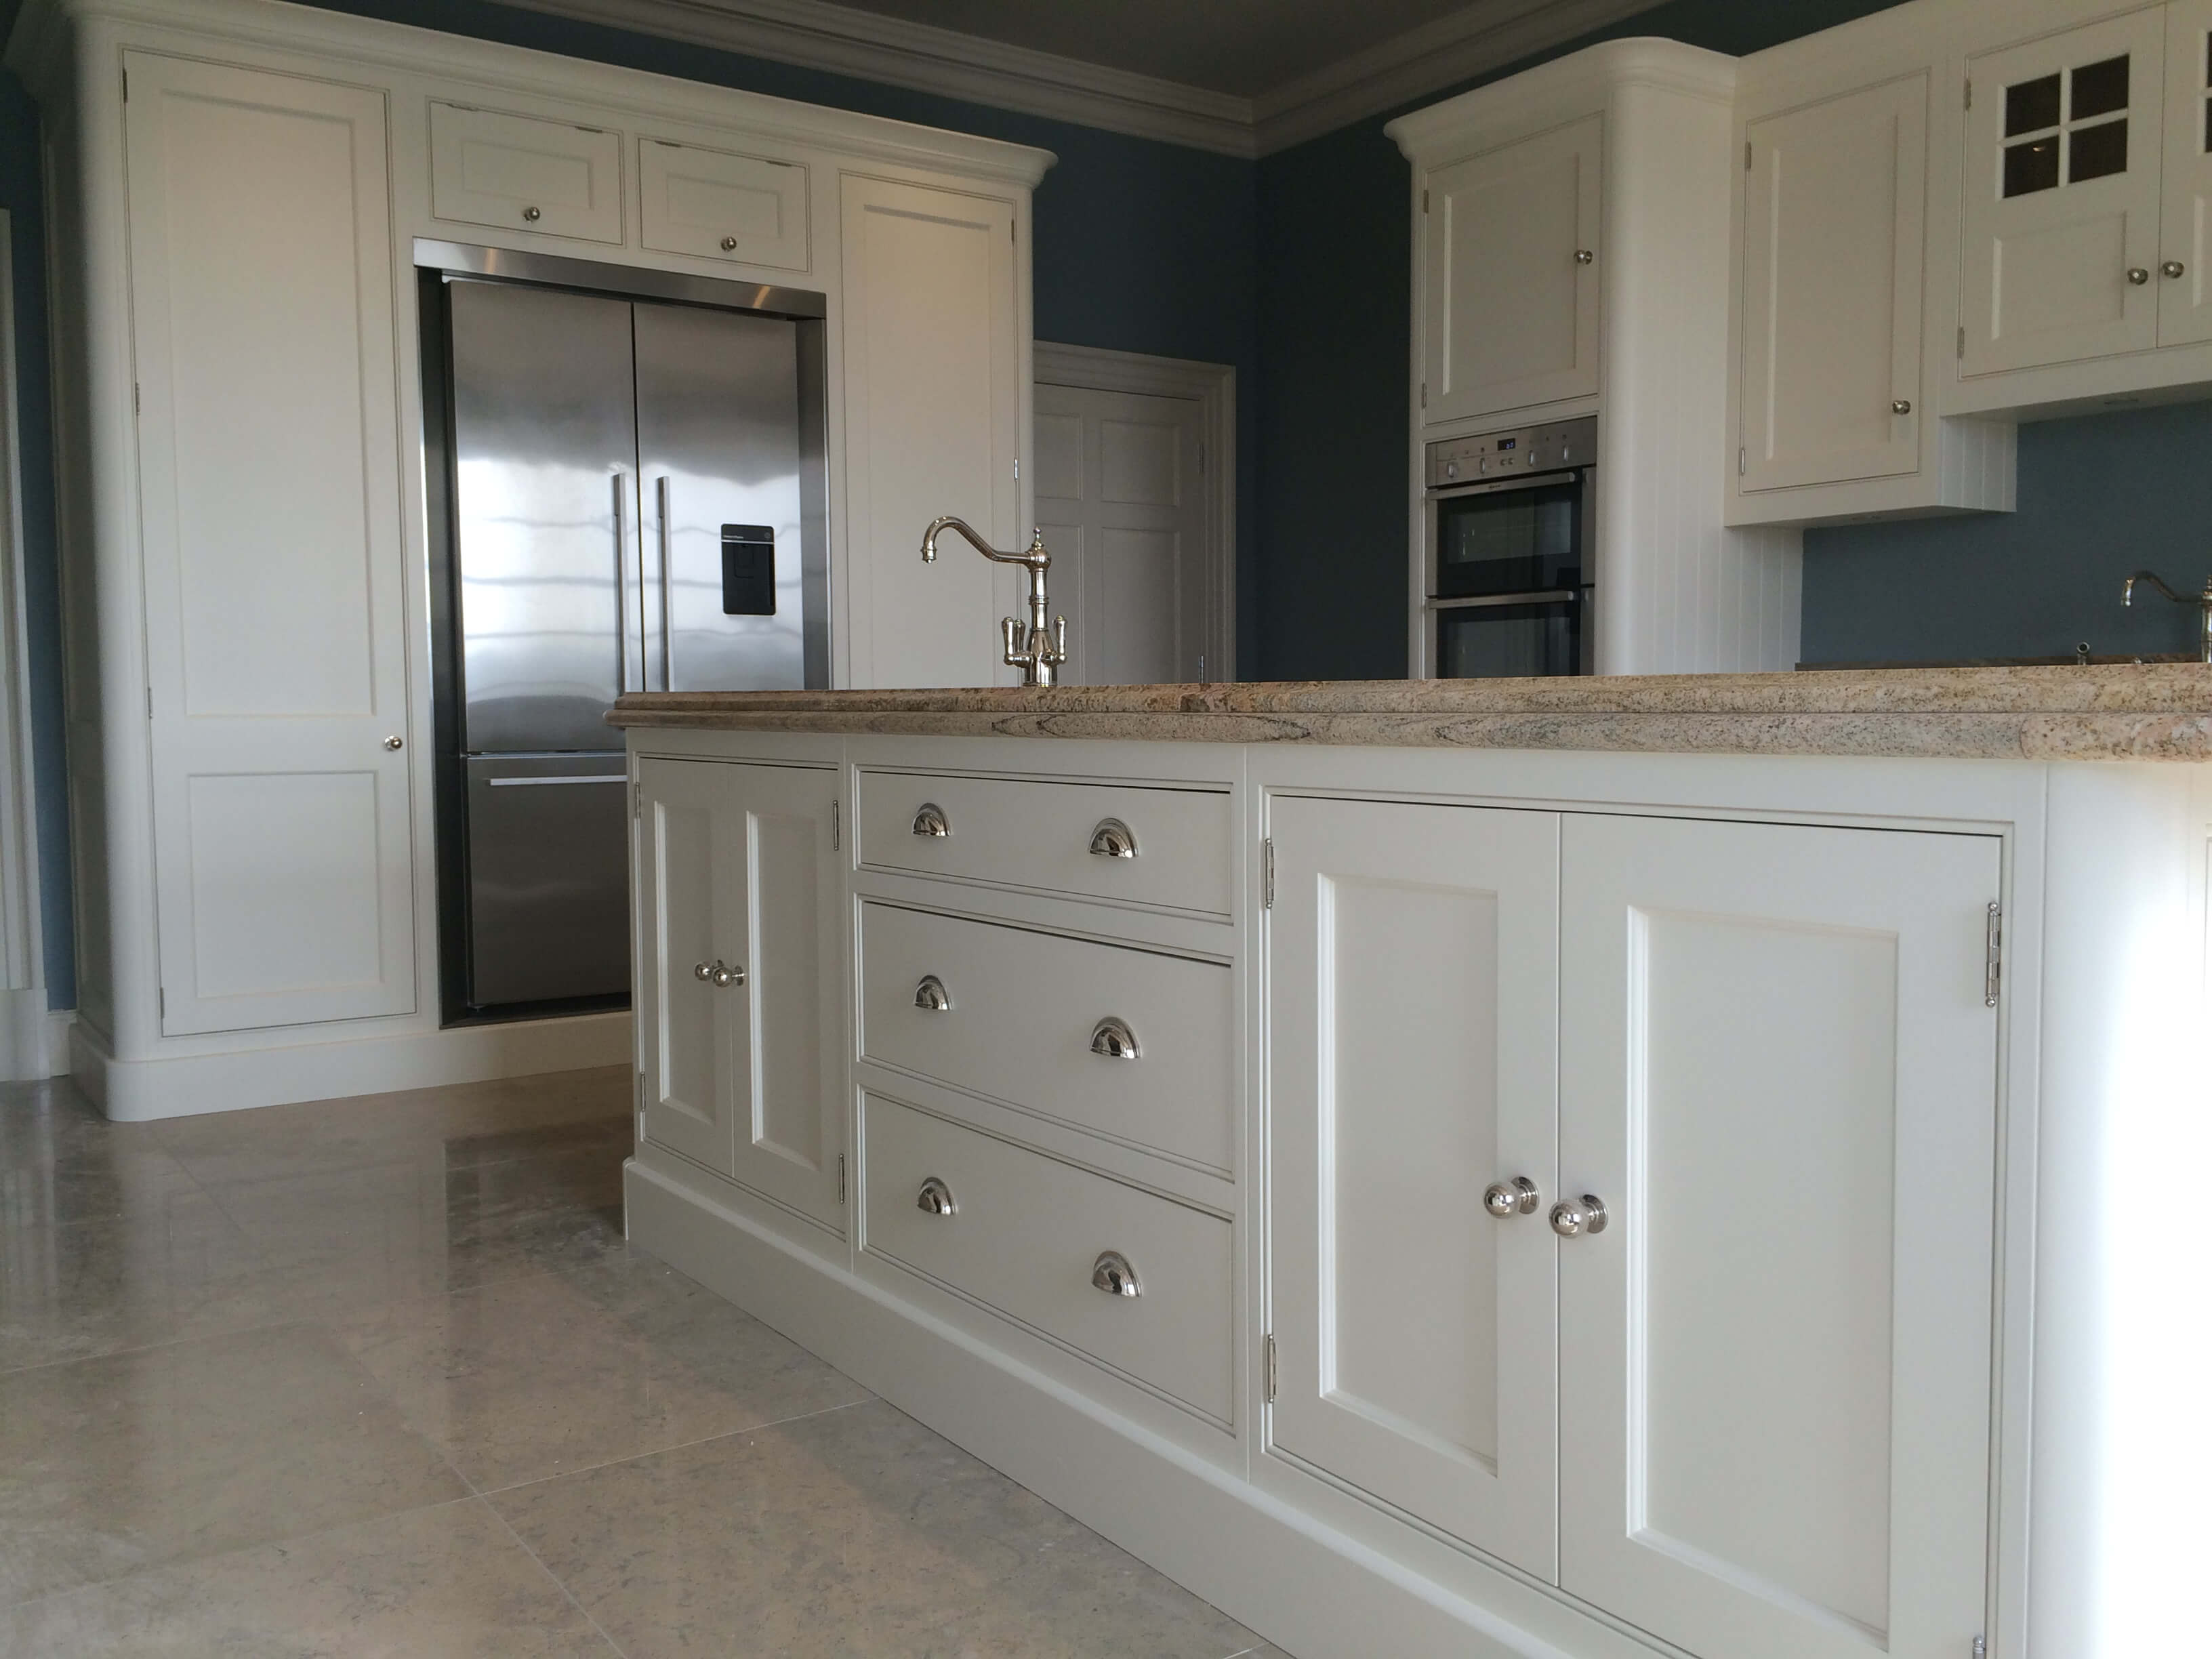 paint for kitchen cabinets uk tom howley painted kitchens ukhand painted kitchens uk 24274